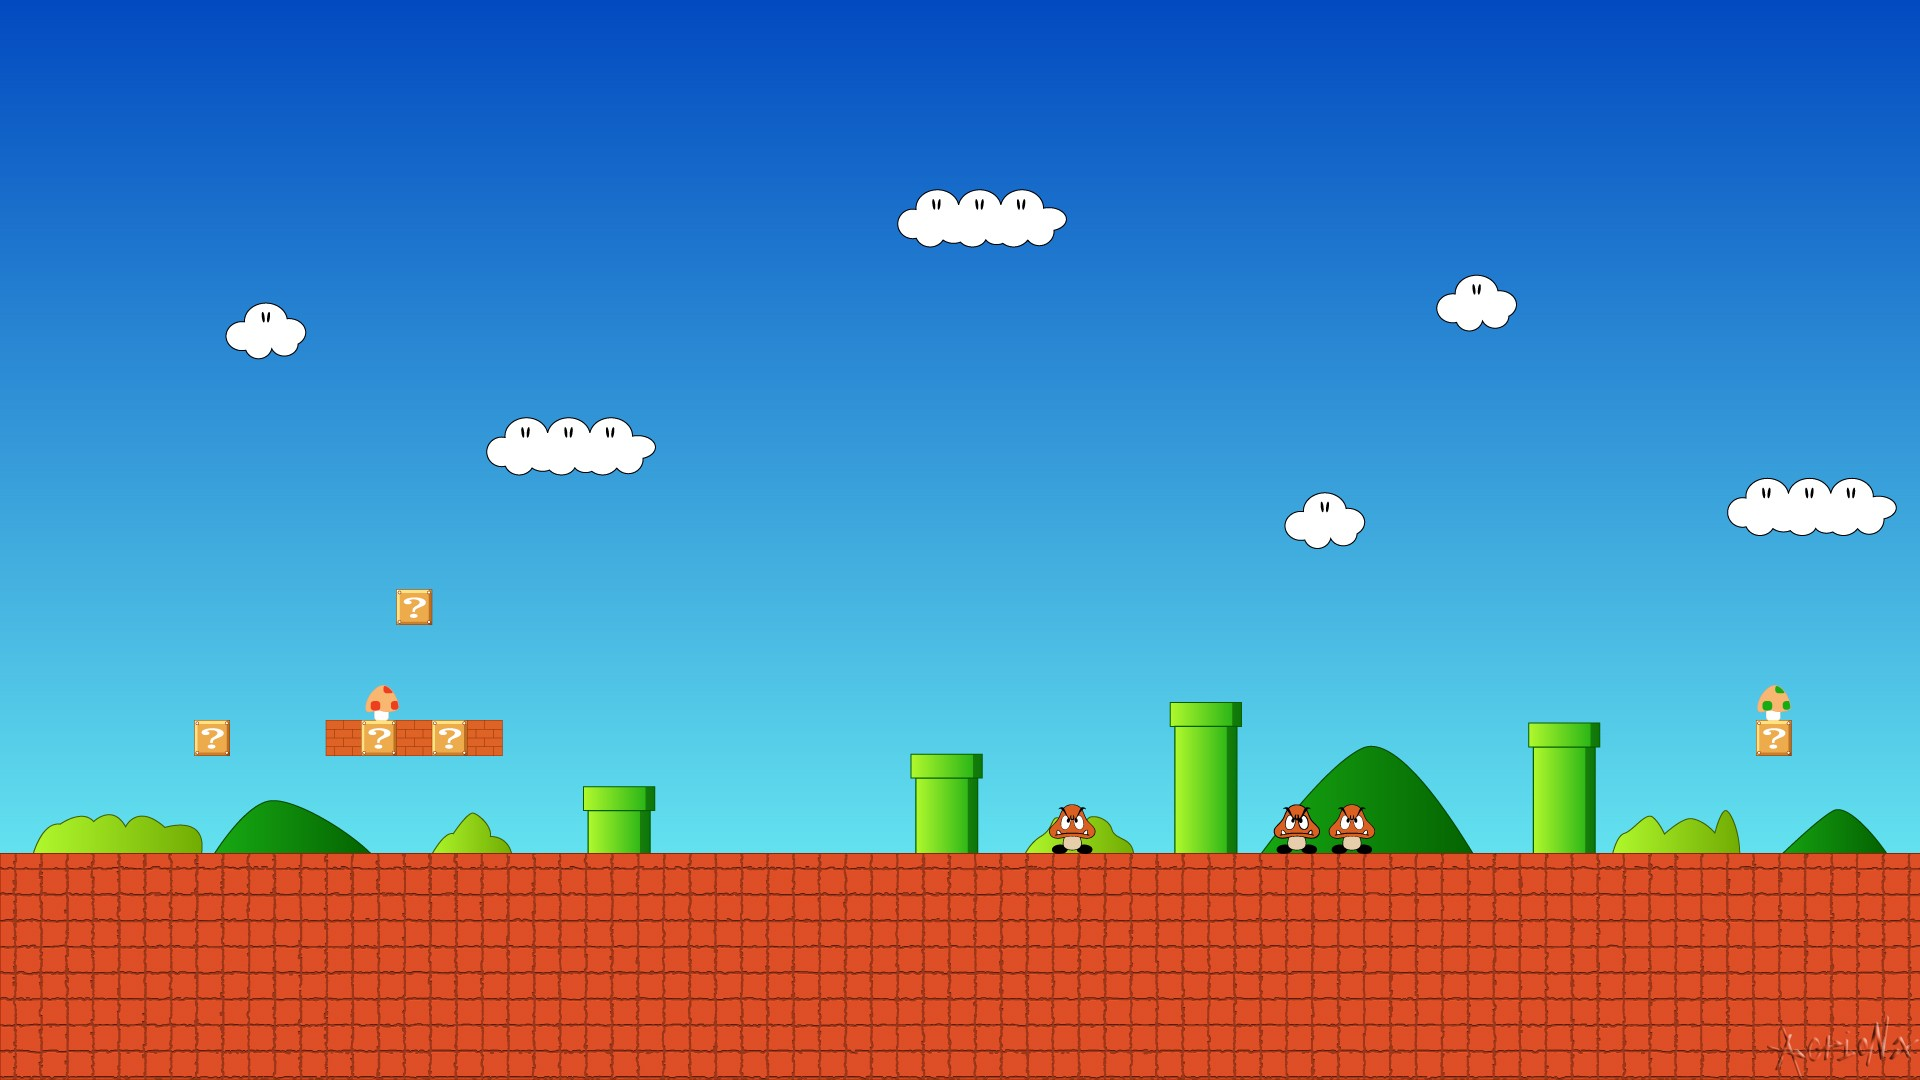 super mario world wallpaper ·① download free cool hd backgrounds